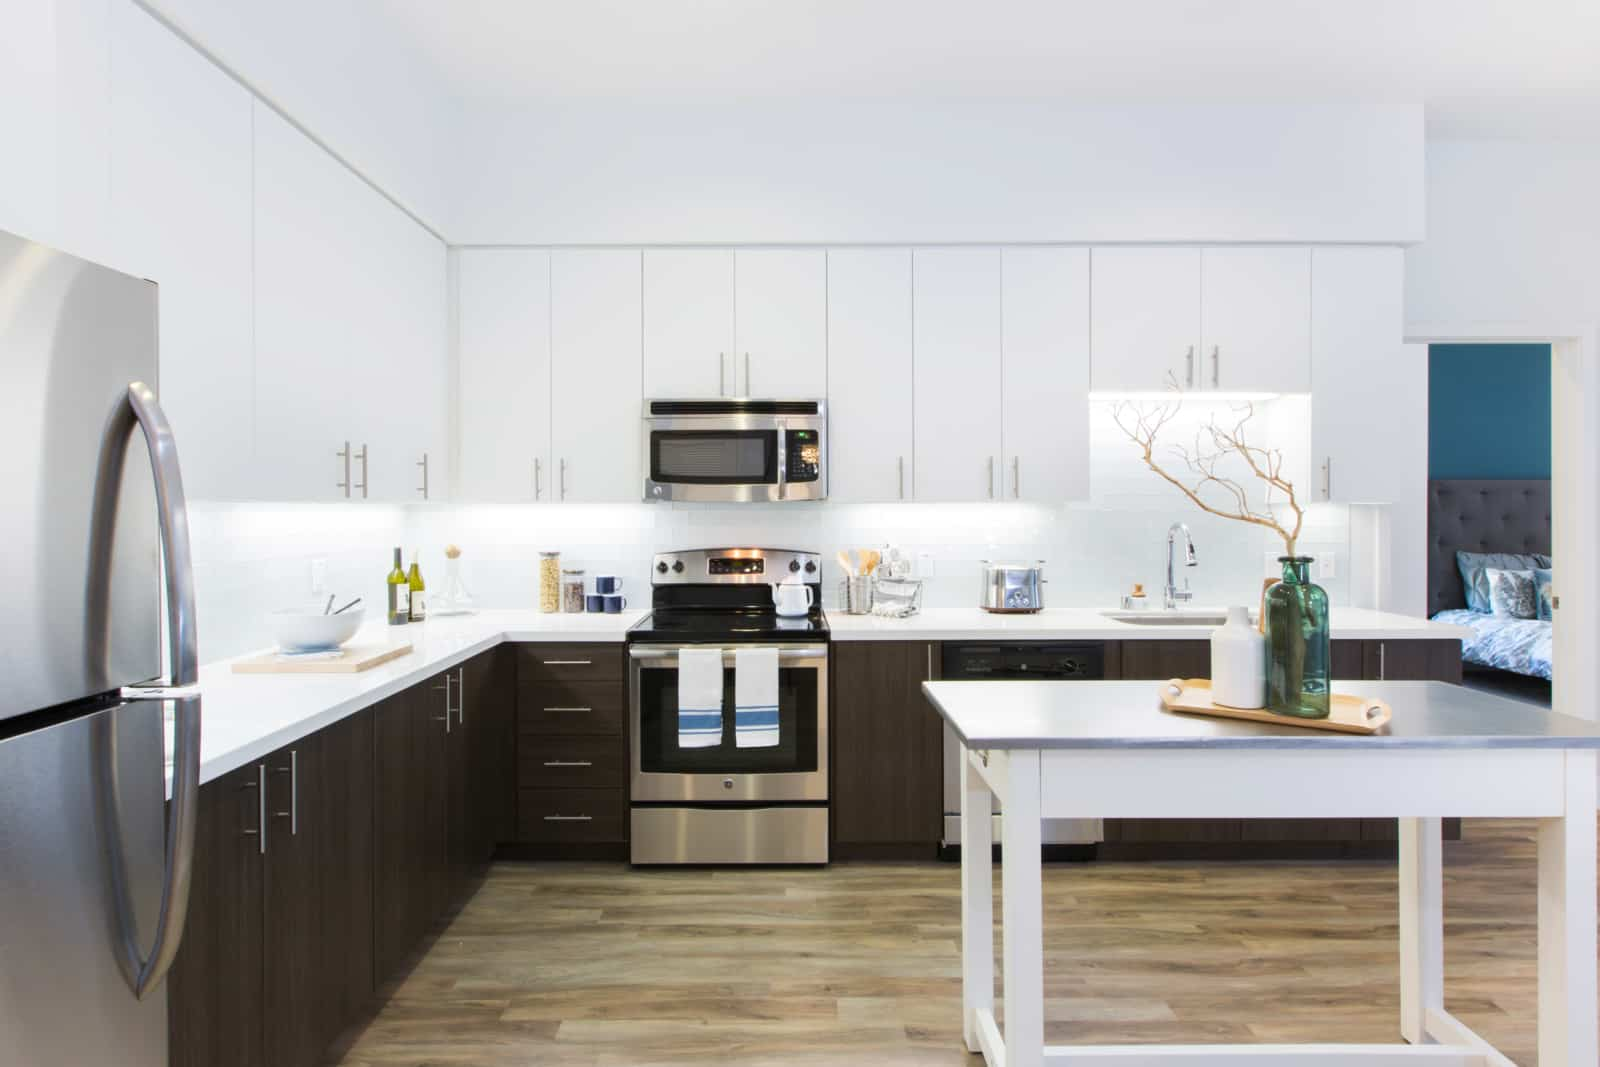 Modern kitchen with stainless steel appliances, white top cabinets and dark bottom cabinets and a view of a bedroom in peeking through a doorway.